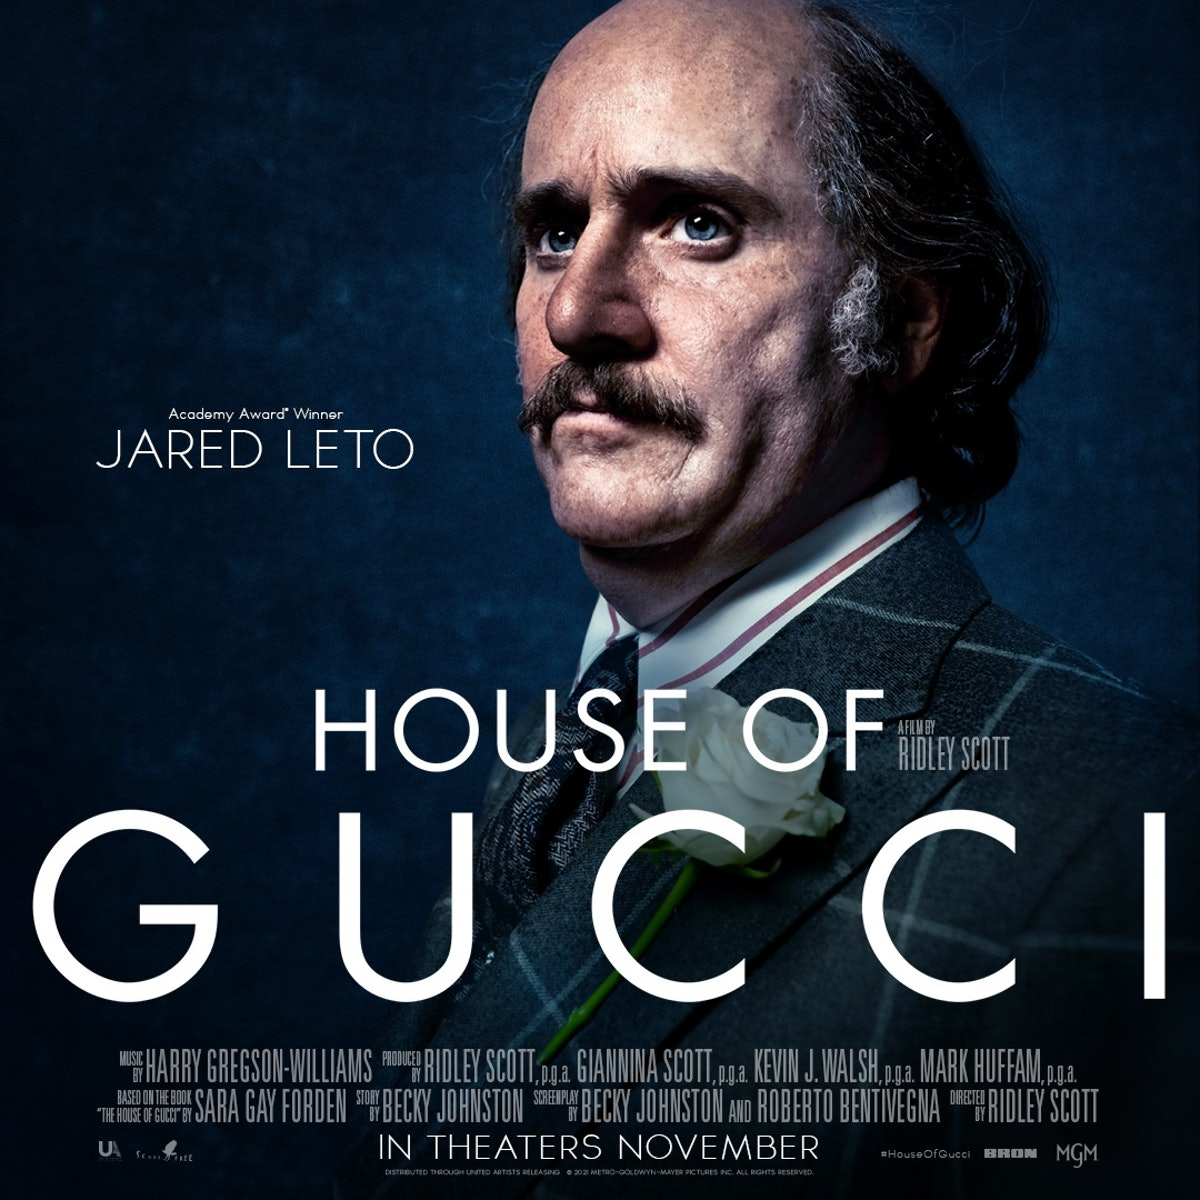 Finally, here is Jared Leto as a Gucci!